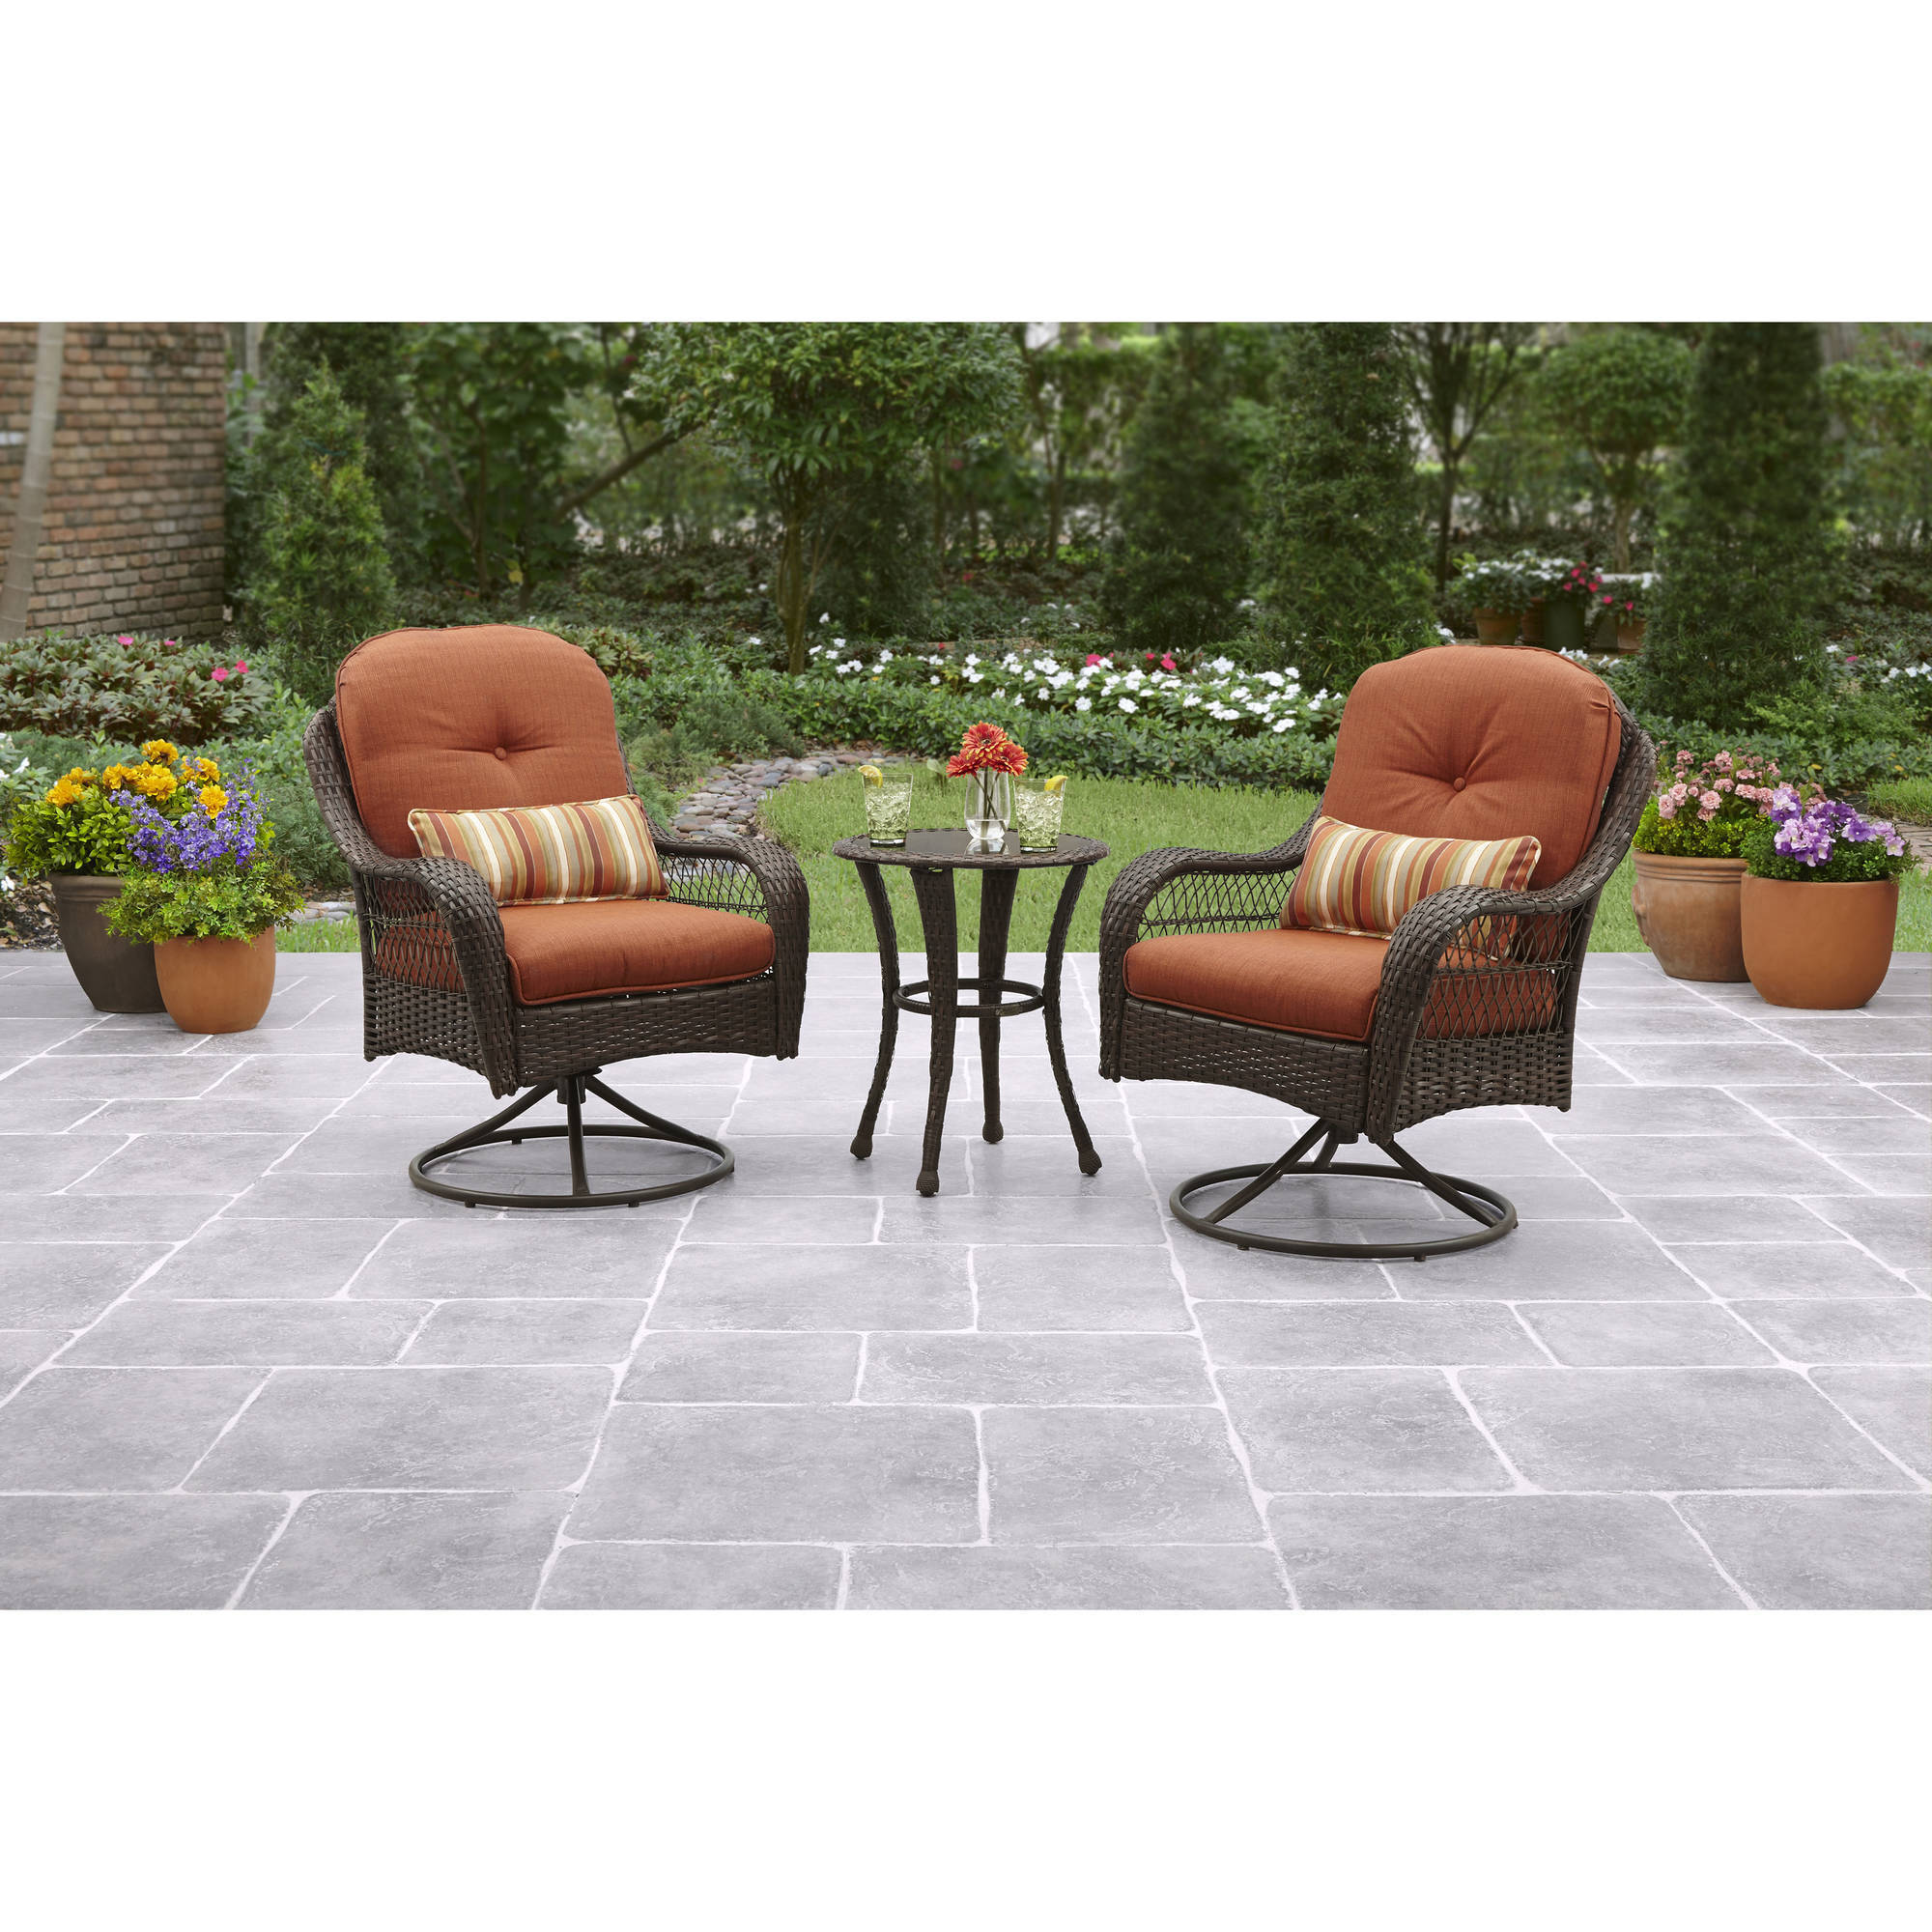 050085634712 Better Homes and Gardens Azalea Ridge 3-Piece Outdoor Bistro Set -  Walmart.com